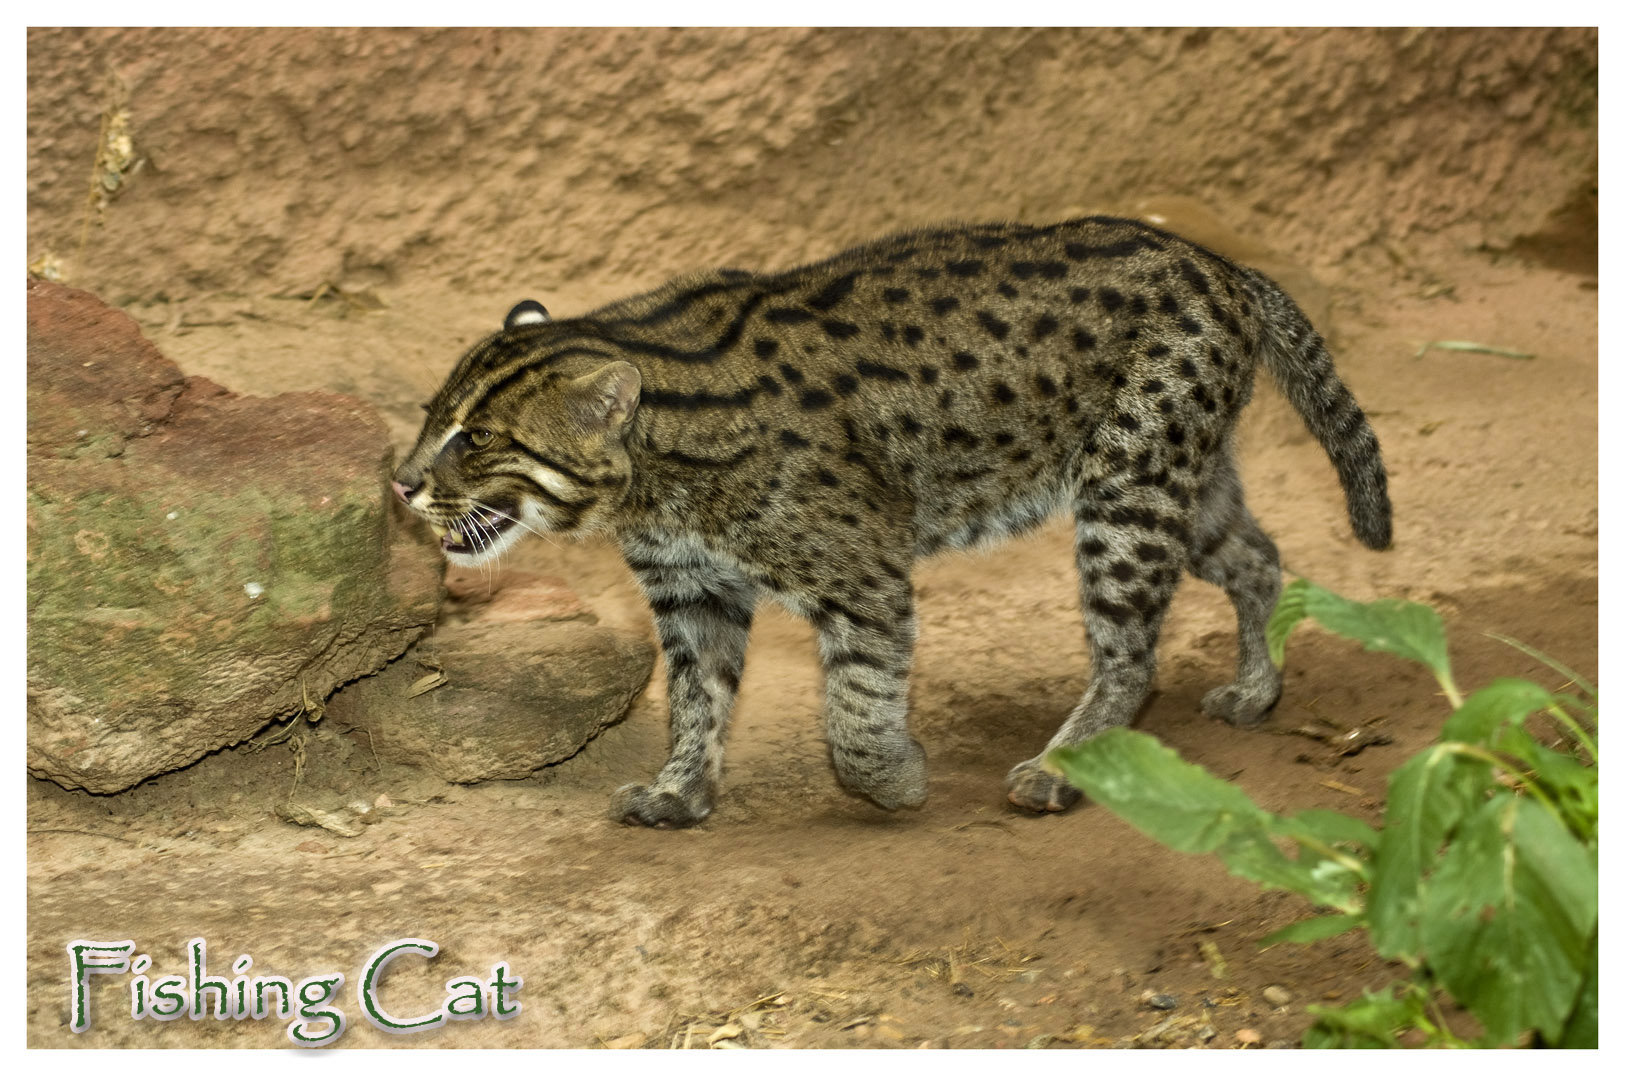 The fishing cat kkeith photographer the photoblog for The fishing cat